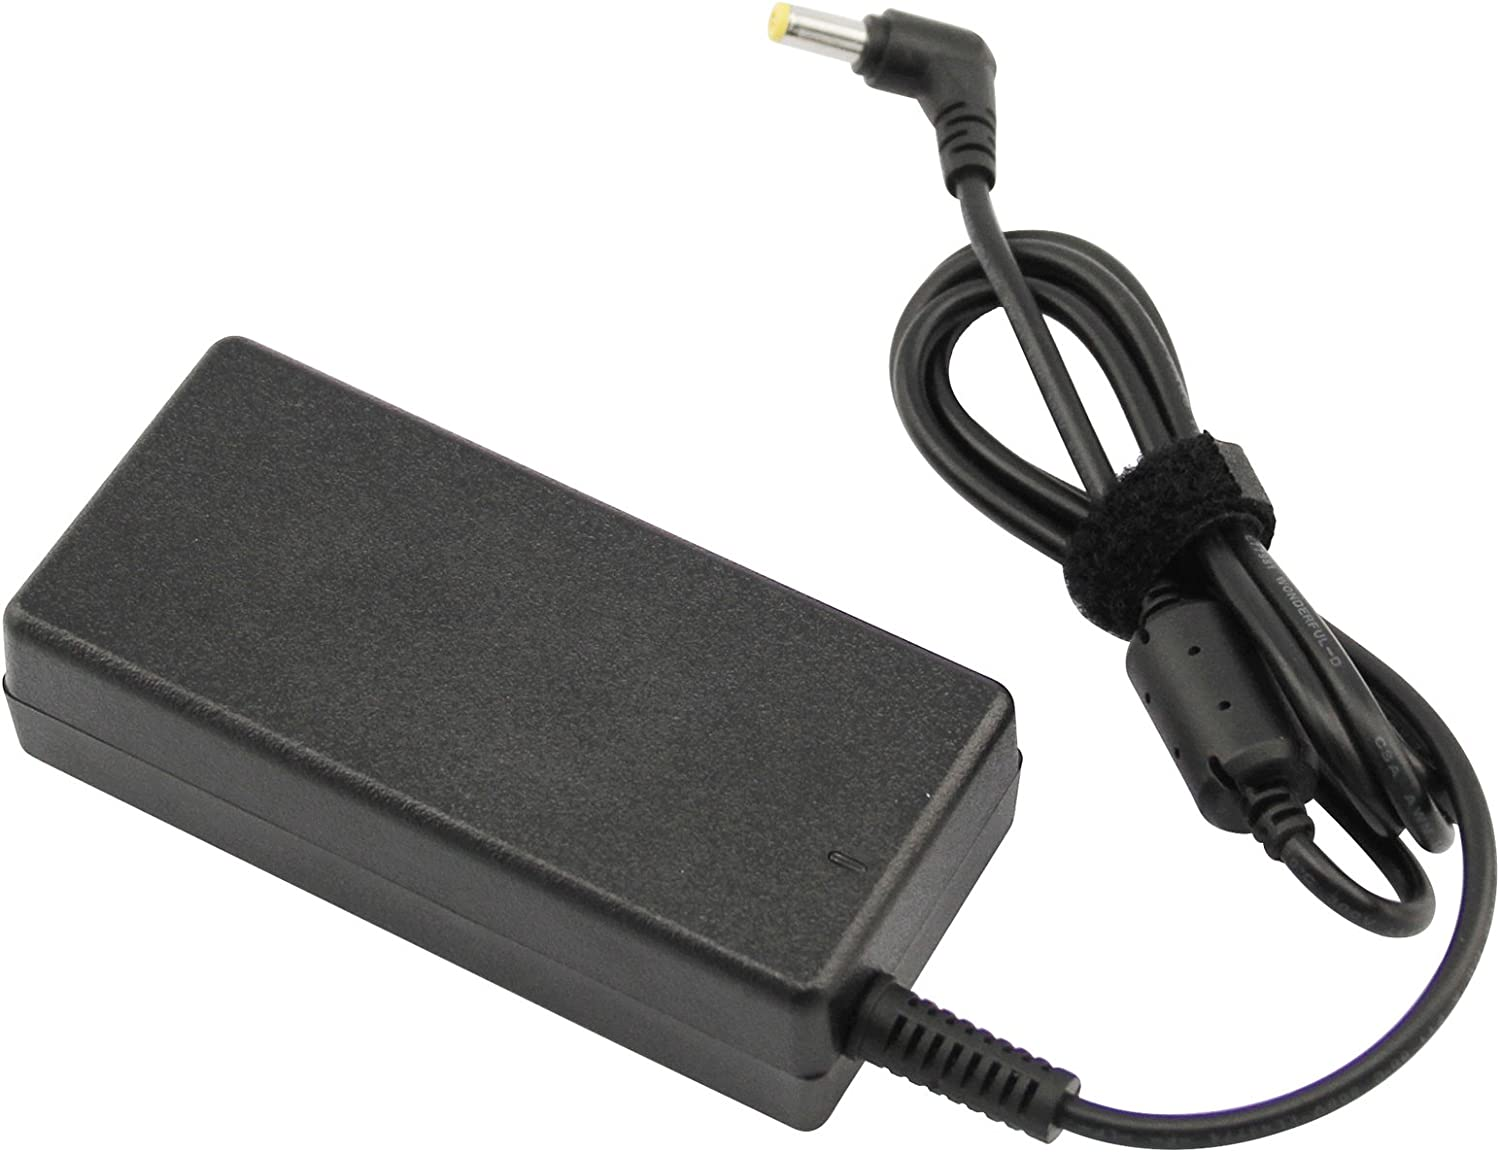 Car Vehicle DC adapter Charger for TOSHIBA TVs.Power Supply Cord 60W 12V 5A